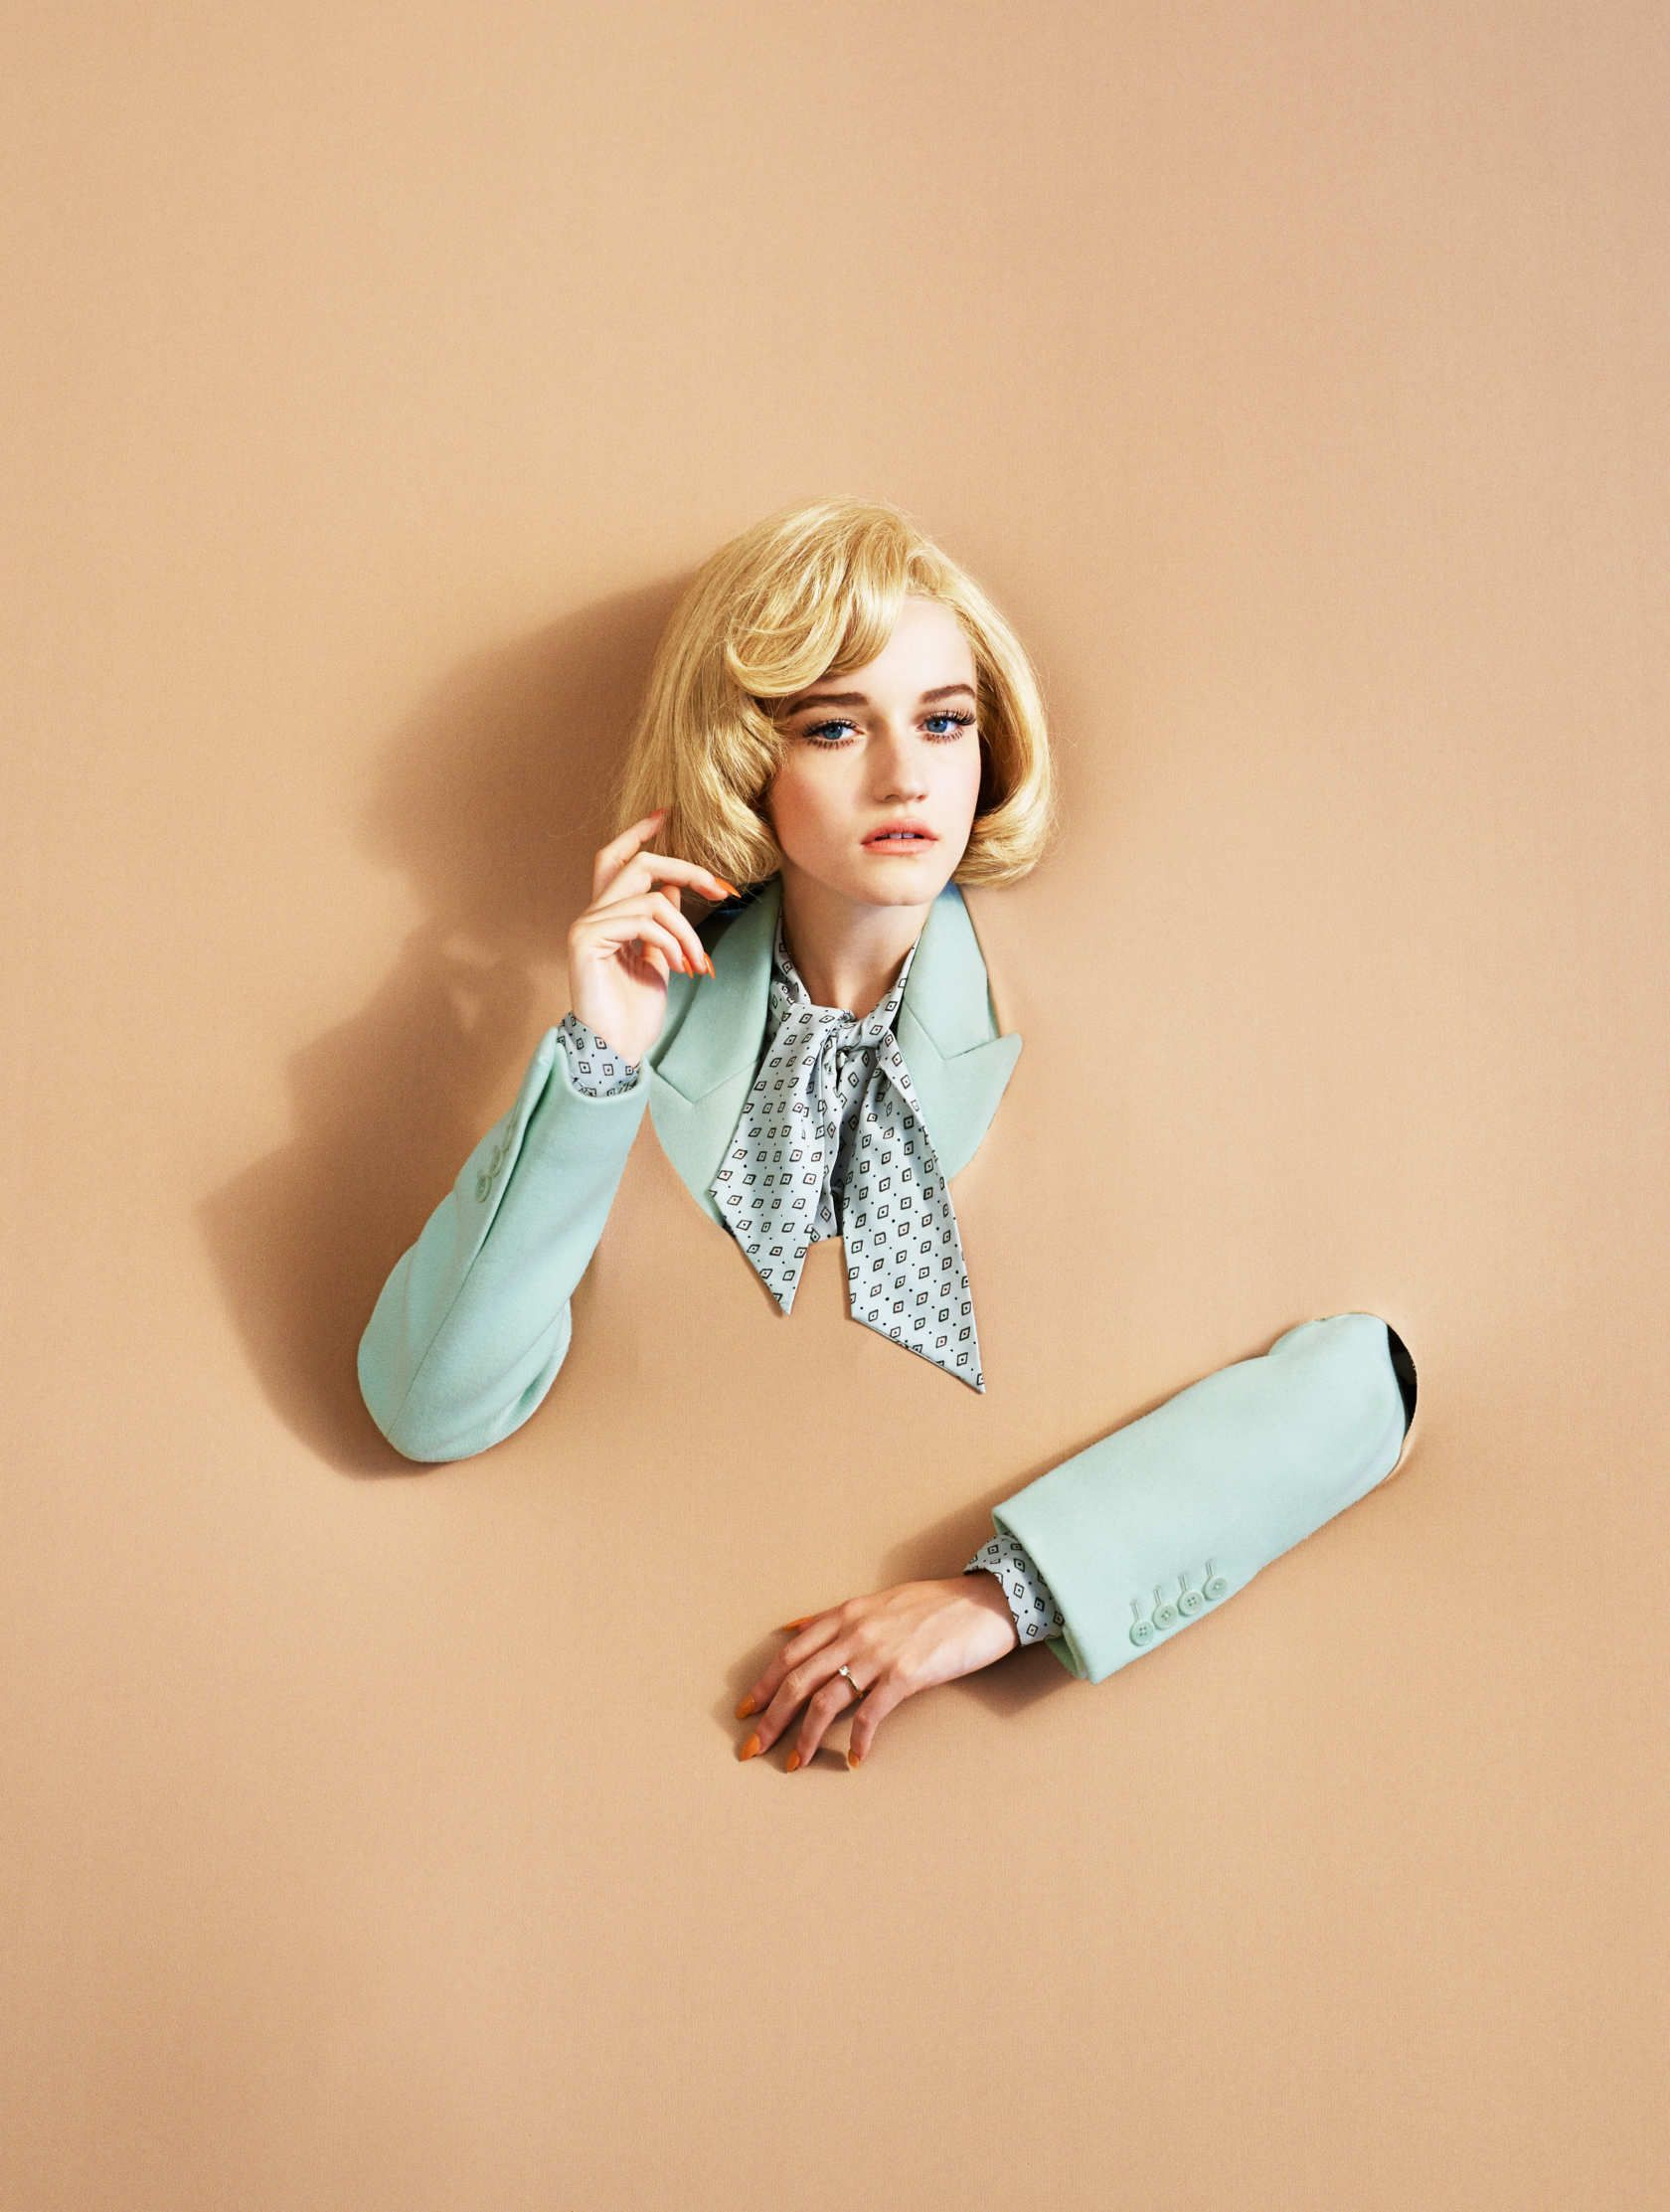 Alex Prager Did A Disembodied Heads Fashion Shoot Fashion